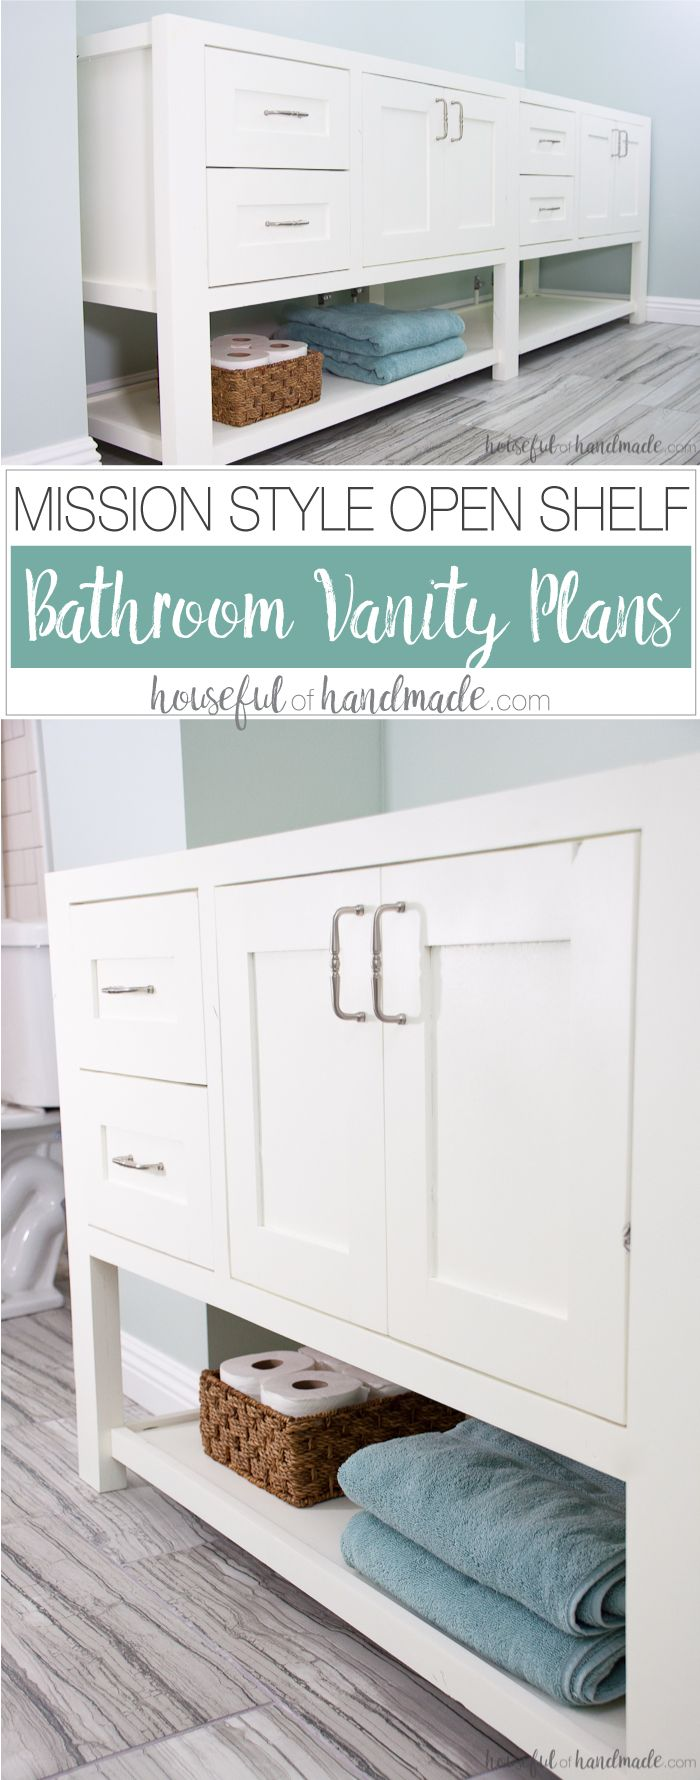 Bathroom vanities on a budget - Mission Style Open Shelf Bathroom Vanity Build Plans